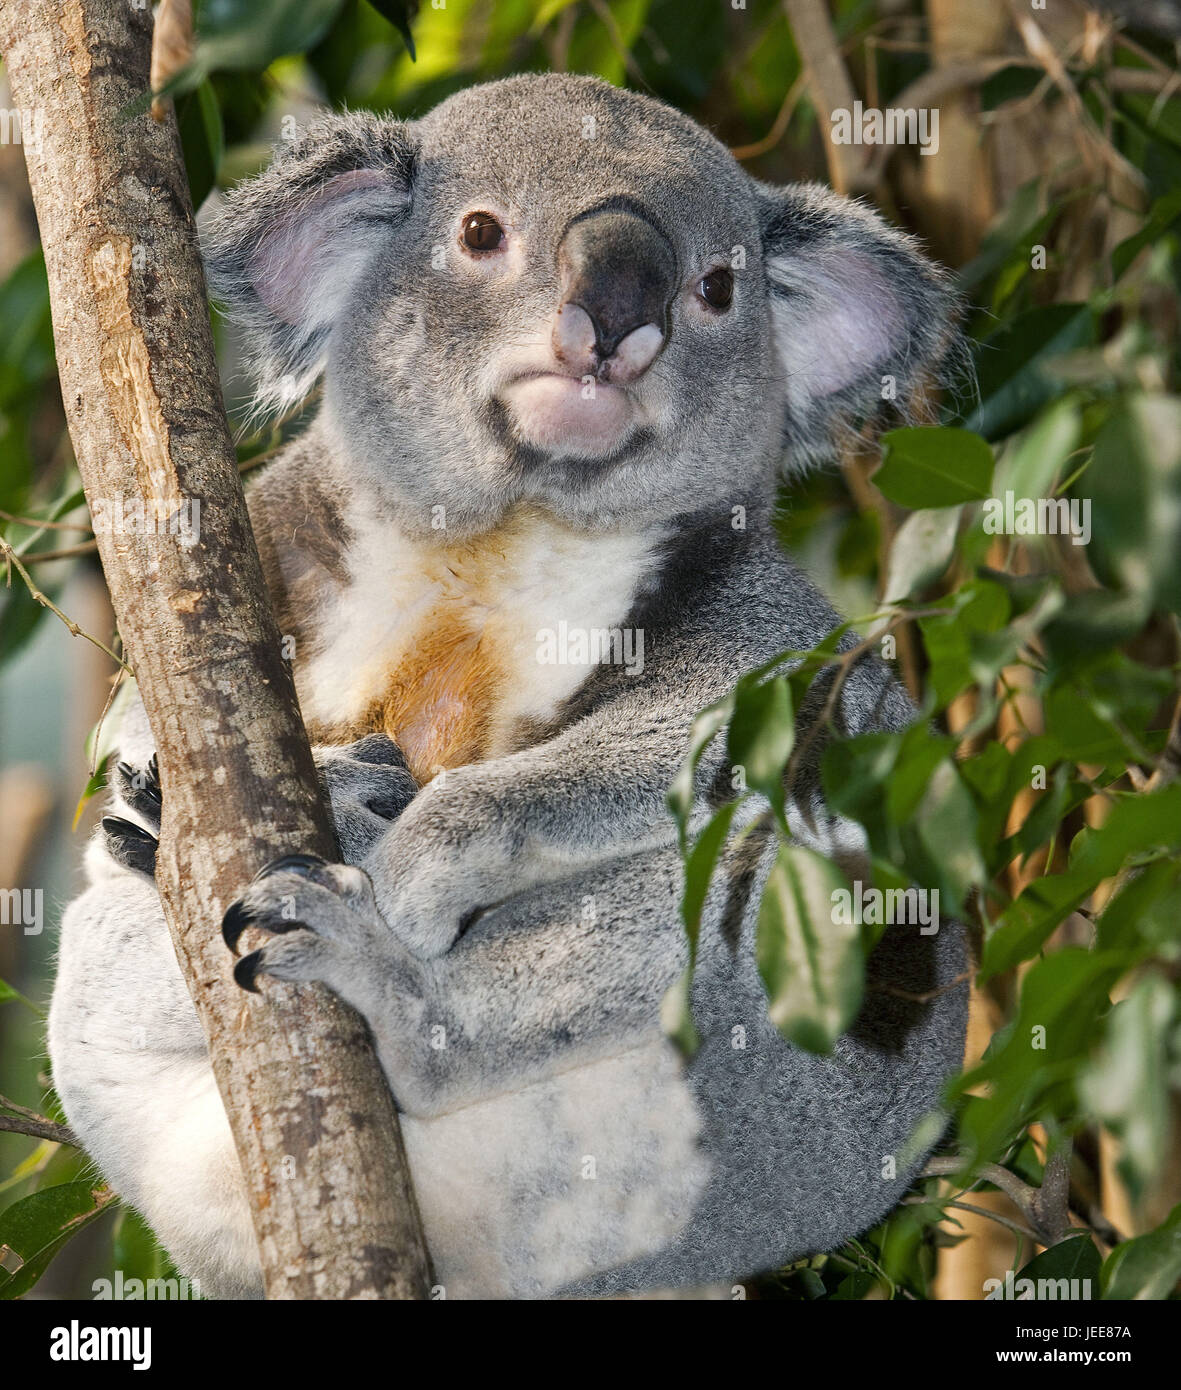 Koala, Phascolarctos cinereus, little men, sit, branch, - Stock Image